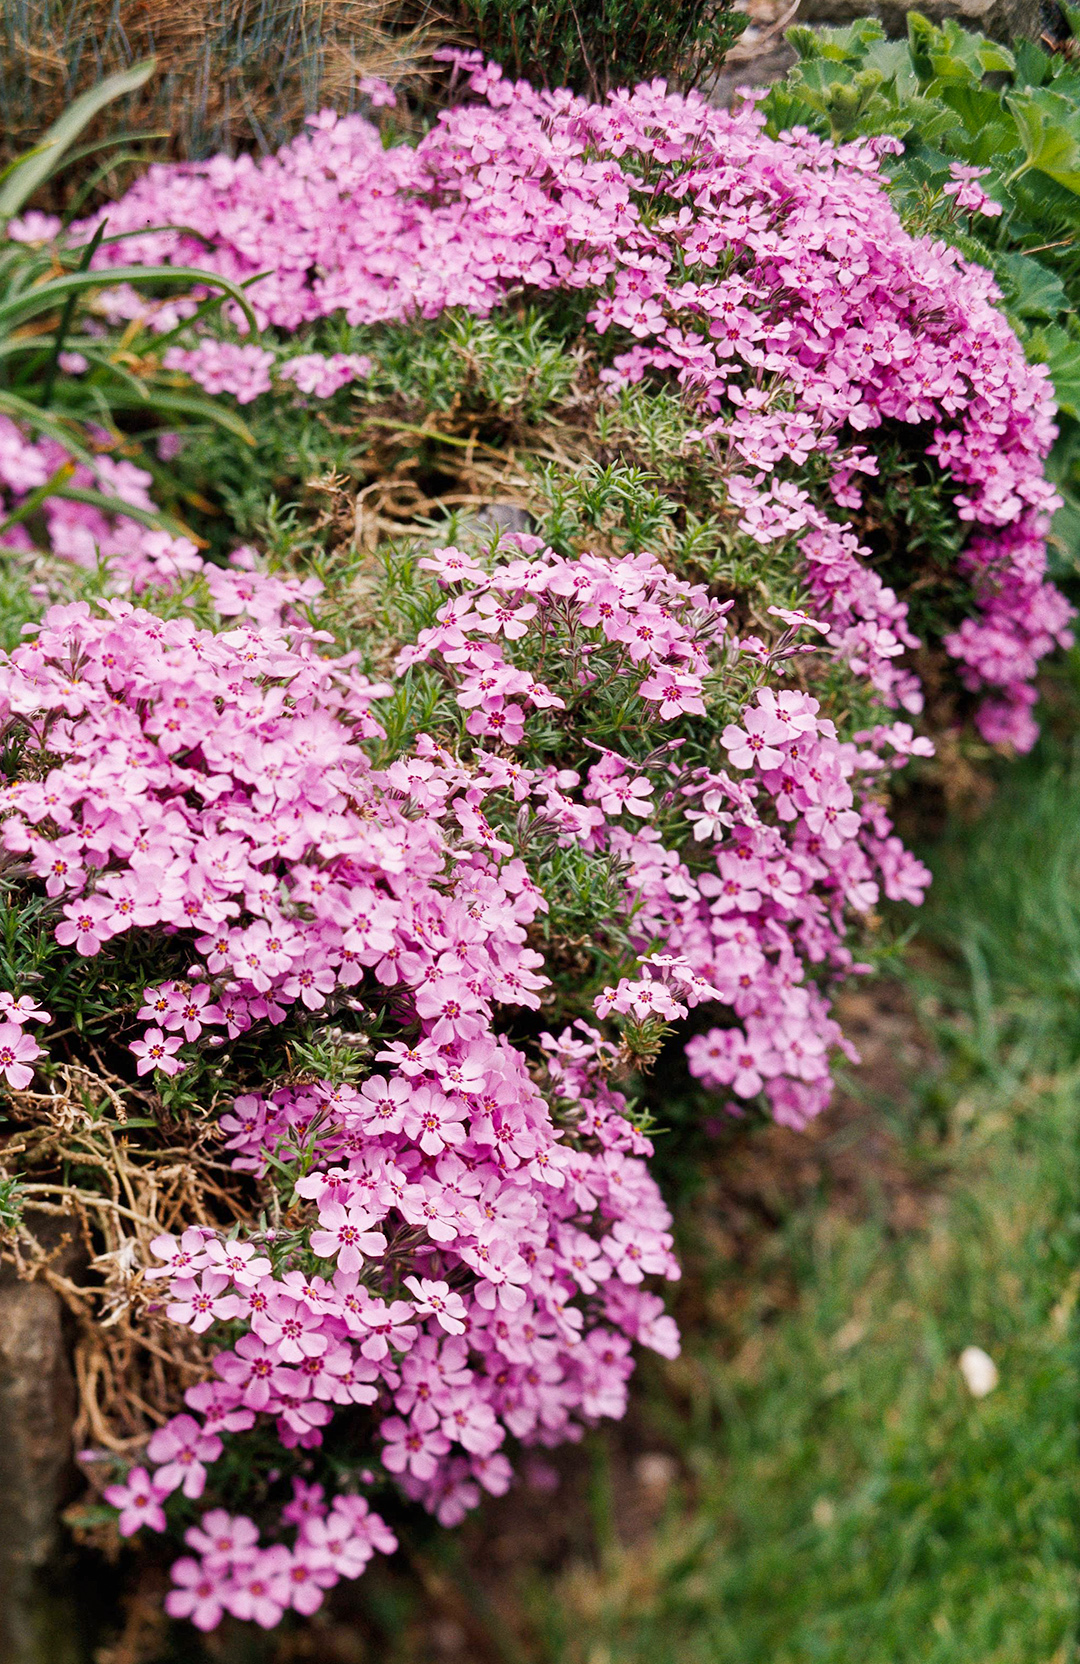 26 Amazing Perennial Varieties for Your Garden on plants house plants, shade house plants, organic house plants, grass house plants, alpine house plants, greenhouse house plants, seasonal house plants, horticulture house plants, fast growing house plants, pruning house plants, fragrant house plants, hydrangea house plants, cutting house plants, sunflower house plants, rhizomes house plants, blue house plants, fruit house plants, forest house plants, shrub house plants, permanent house plants,